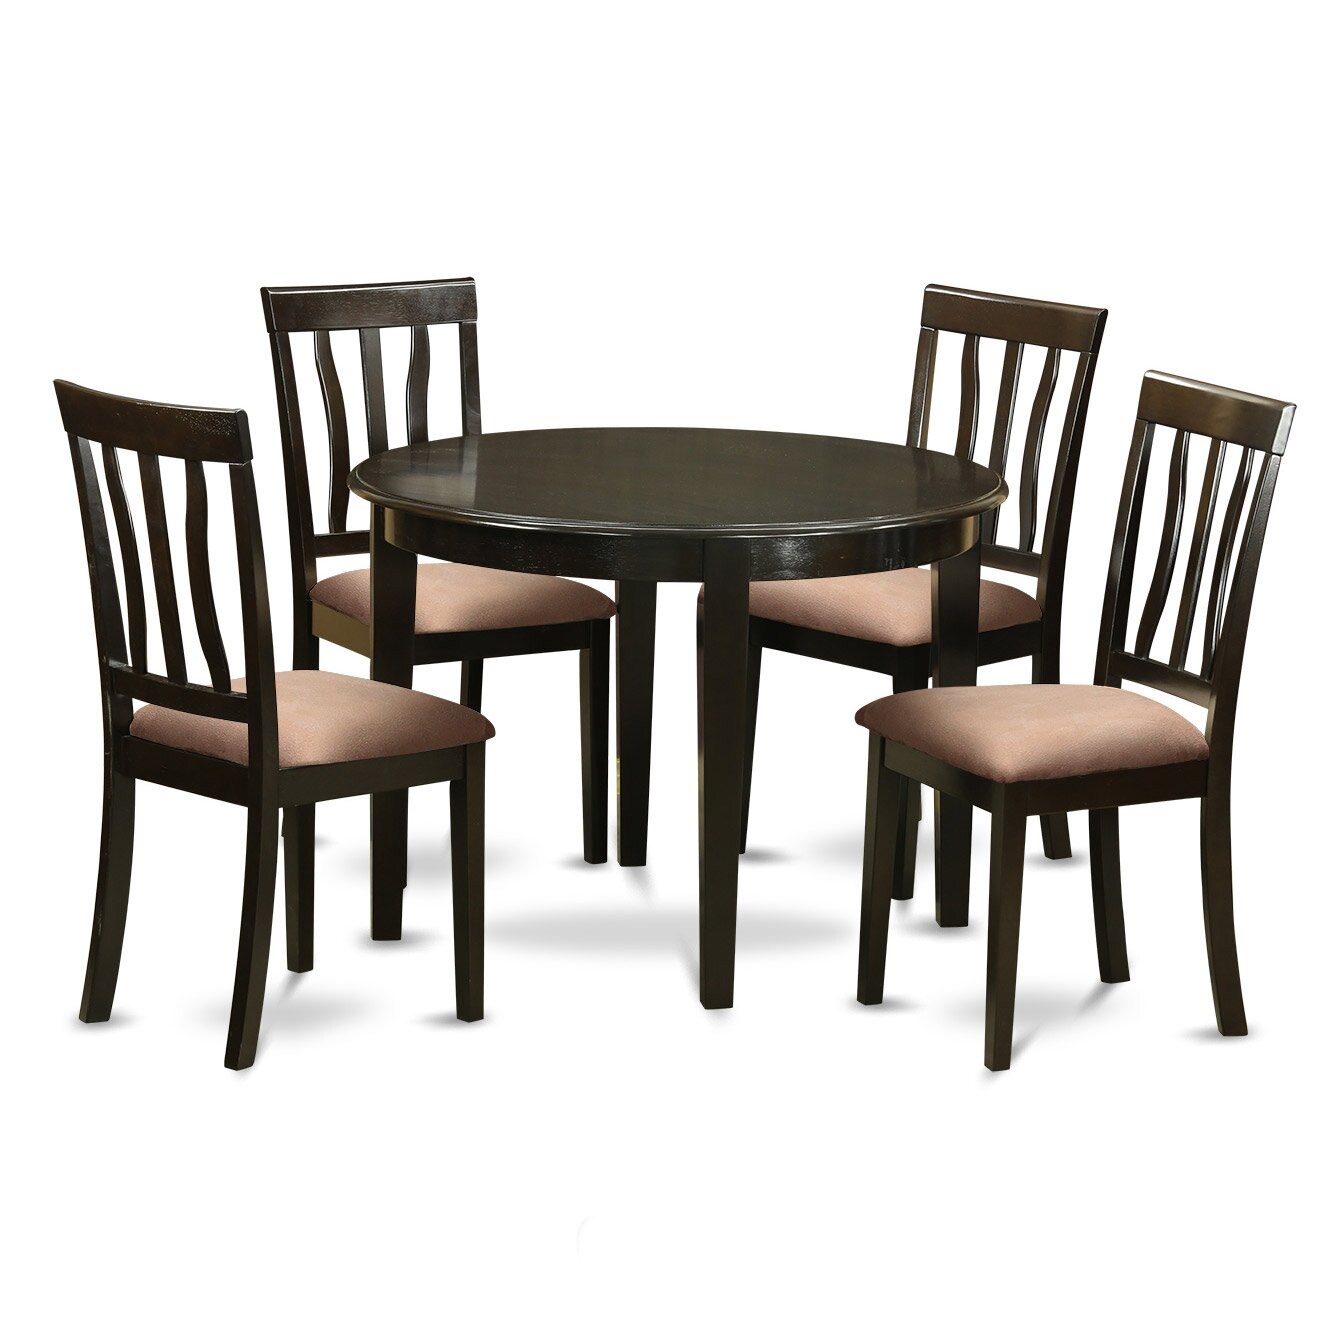 Wooden importers boston 5 piece dining set wayfair for Kitchen table and chairs